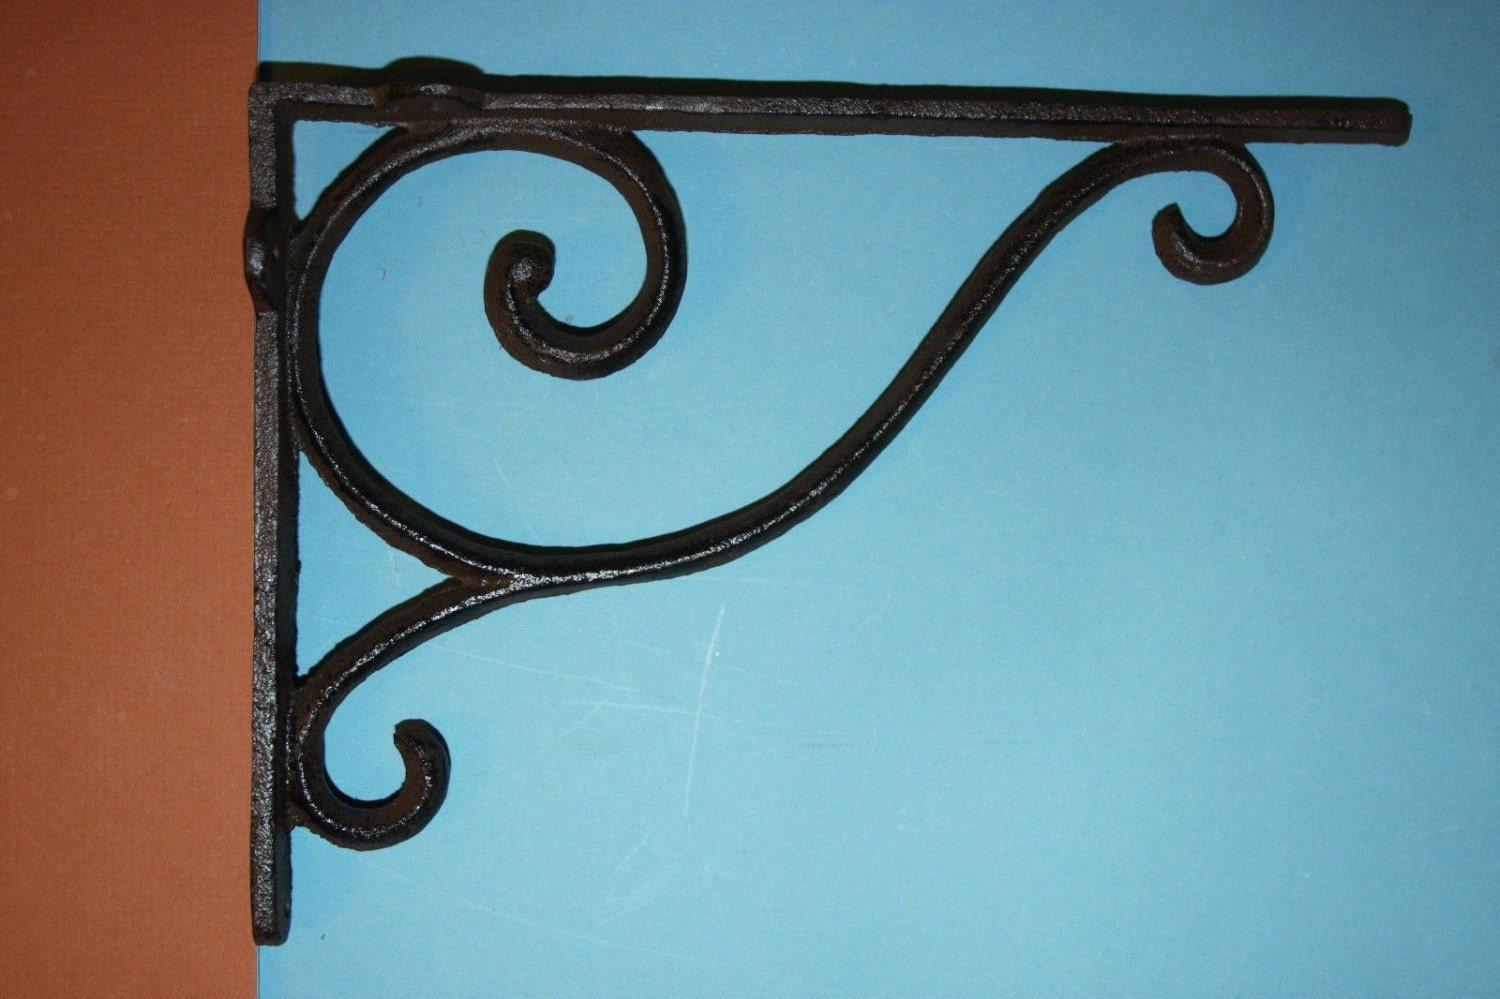 8 pcs elegant design shelf brackets cast iron shelf by runningtide. Black Bedroom Furniture Sets. Home Design Ideas